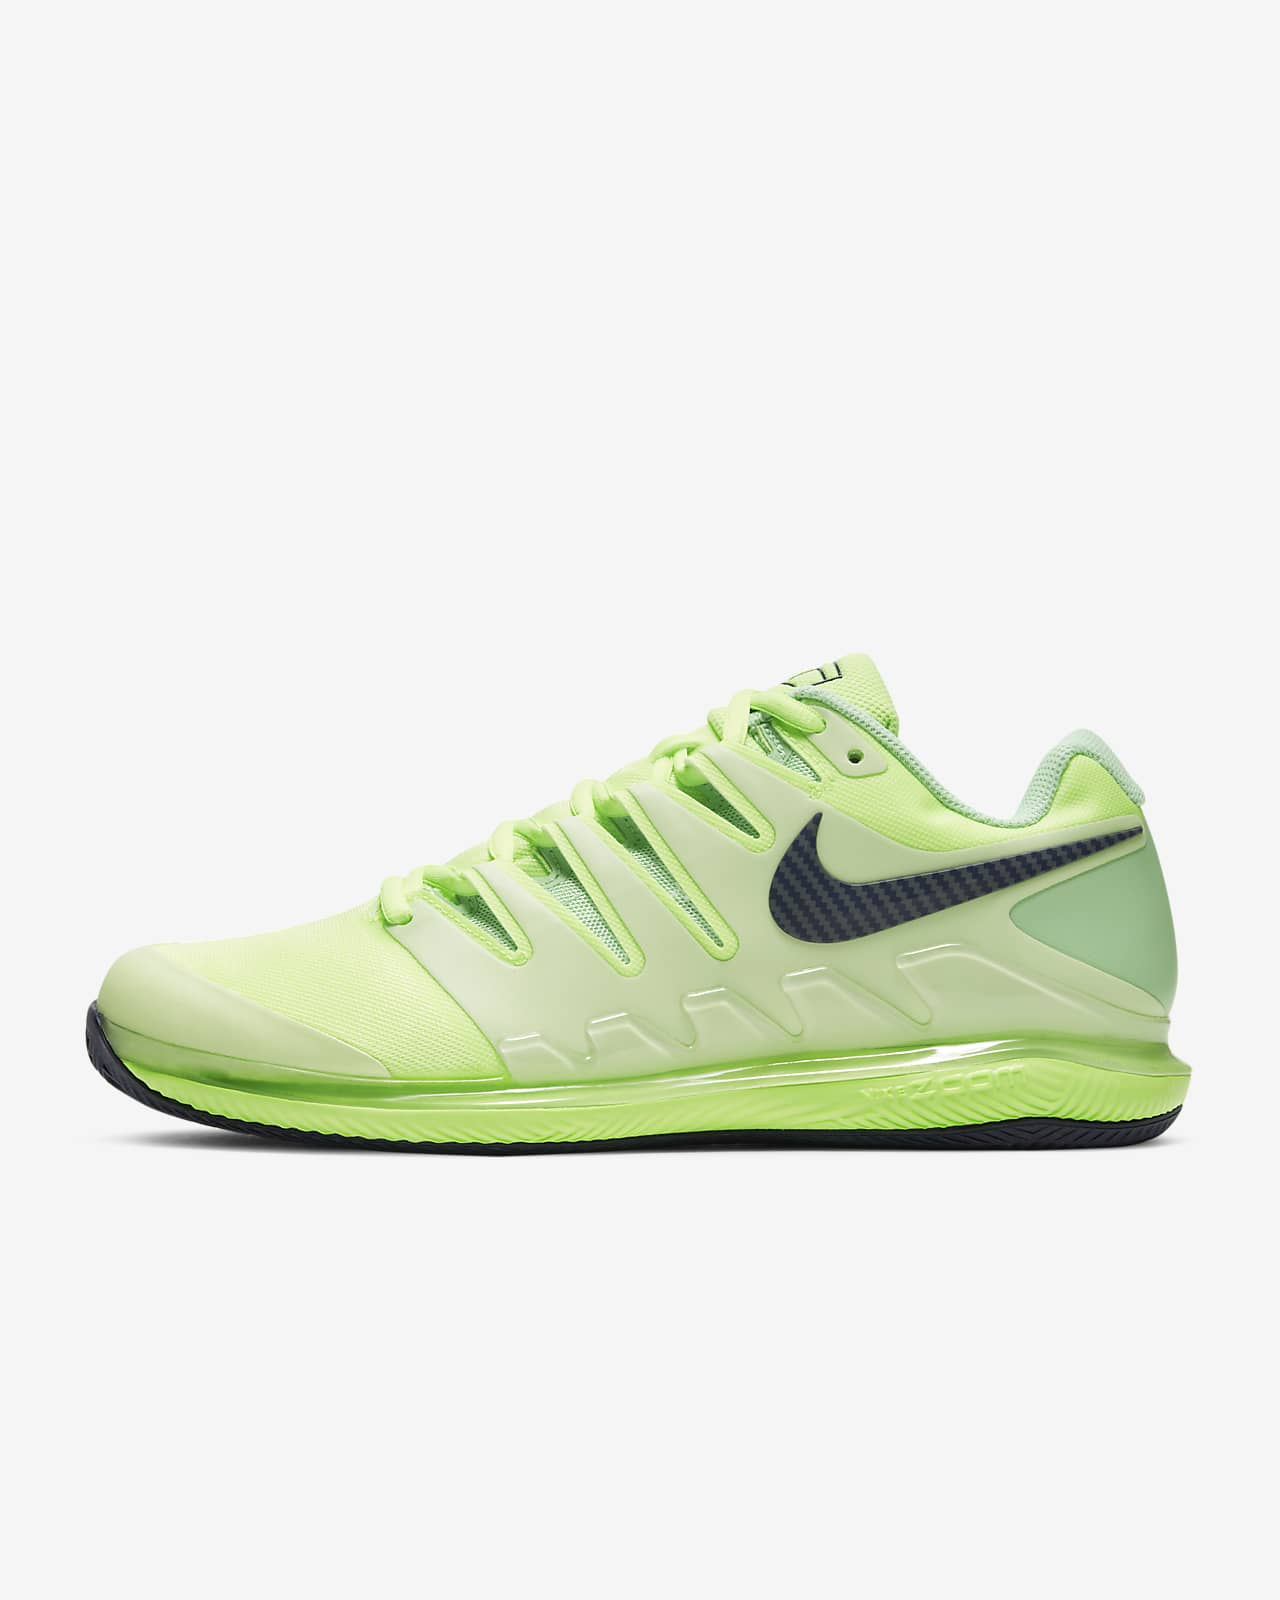 Nikecourt Air Zoom Vapor X Men S Clay Tennis Shoe Nike Ca